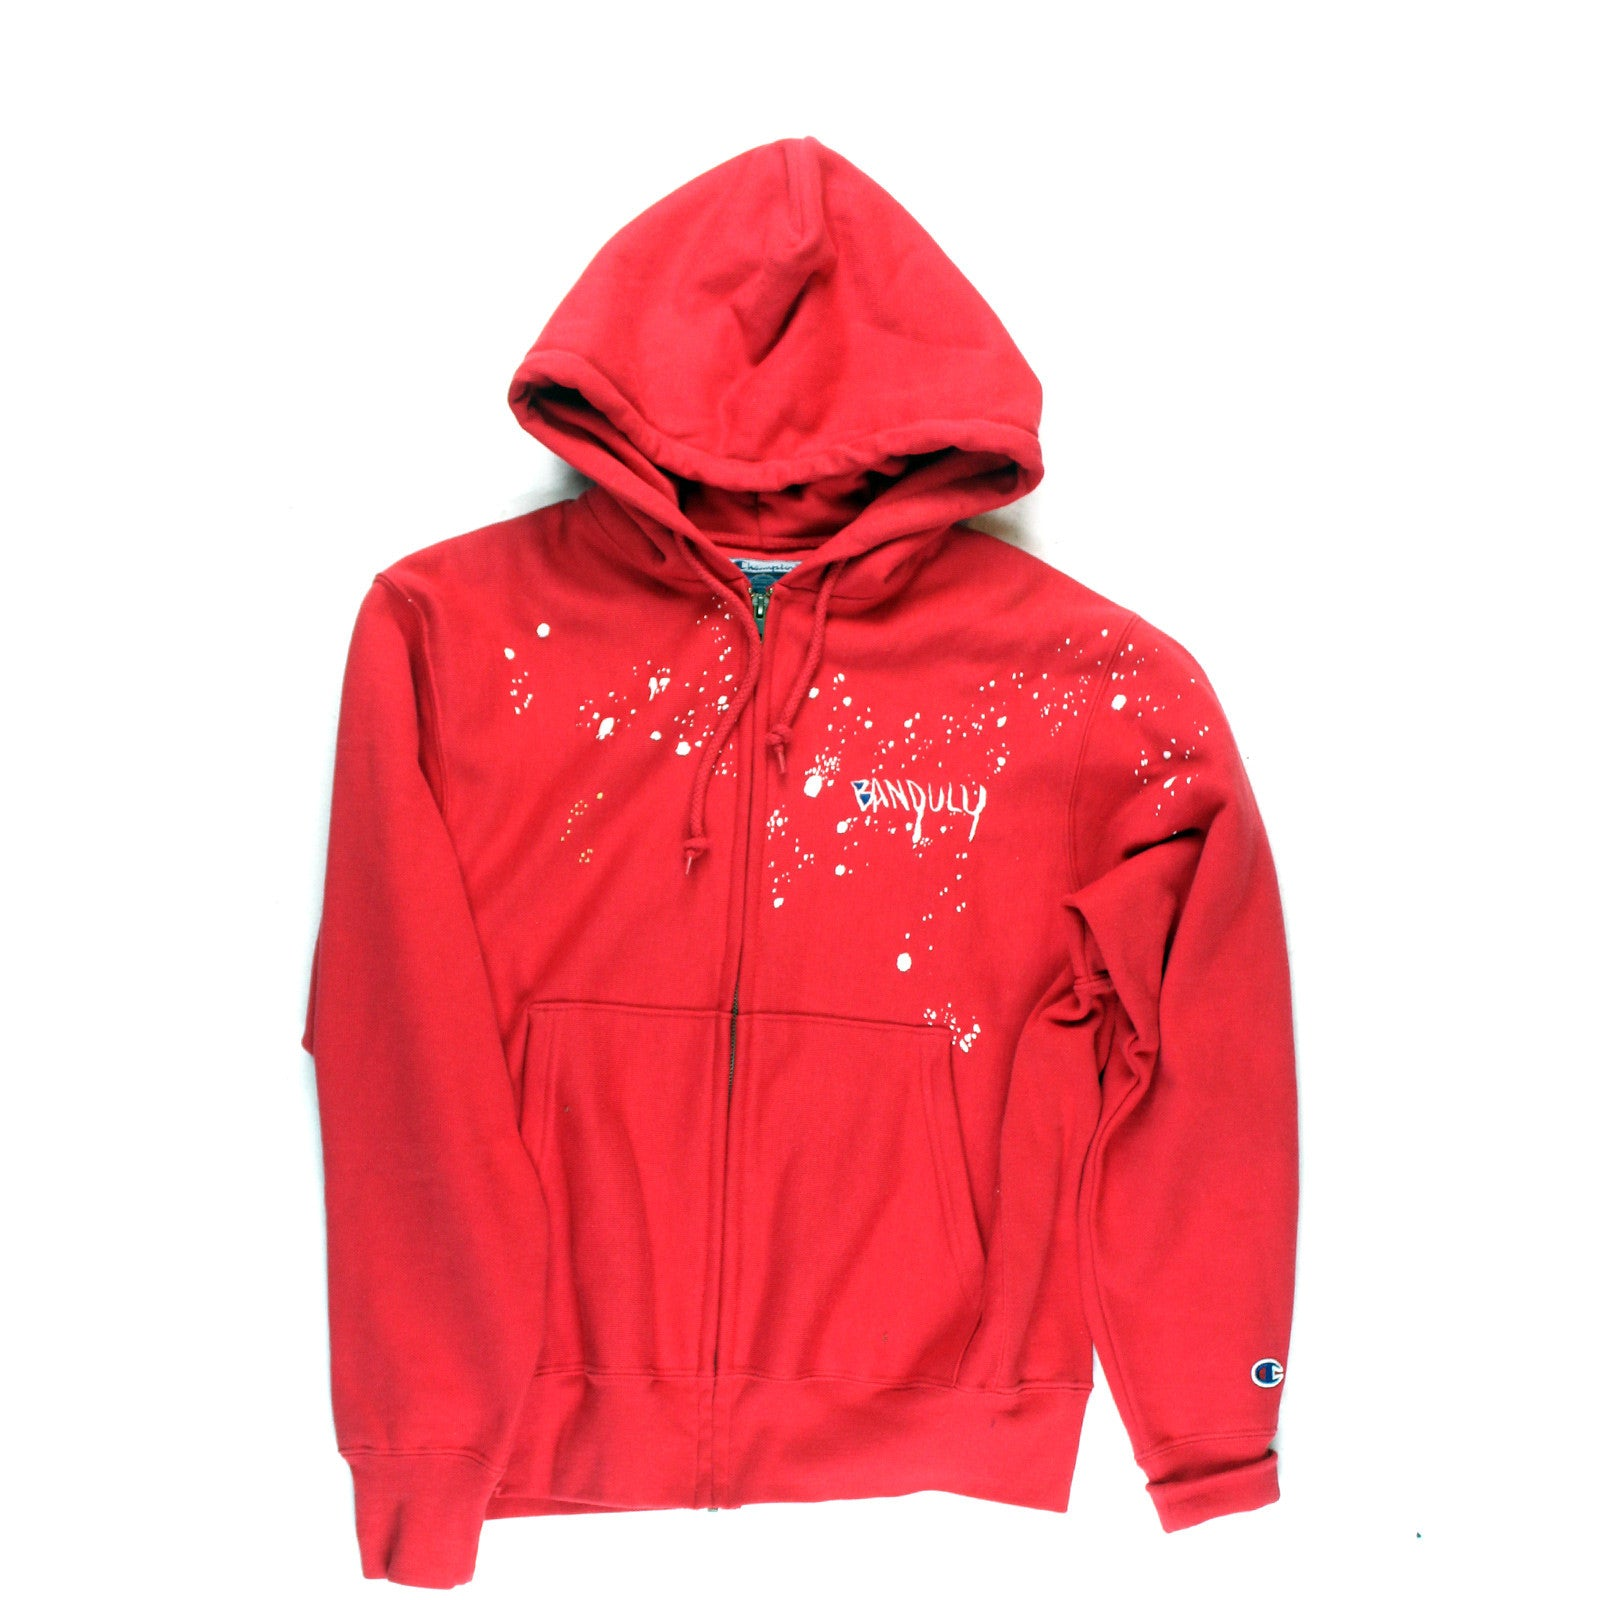 "BANDULU ""RED RAIDERS"" VINTAGE CHAMPION ZIP HOODIE"